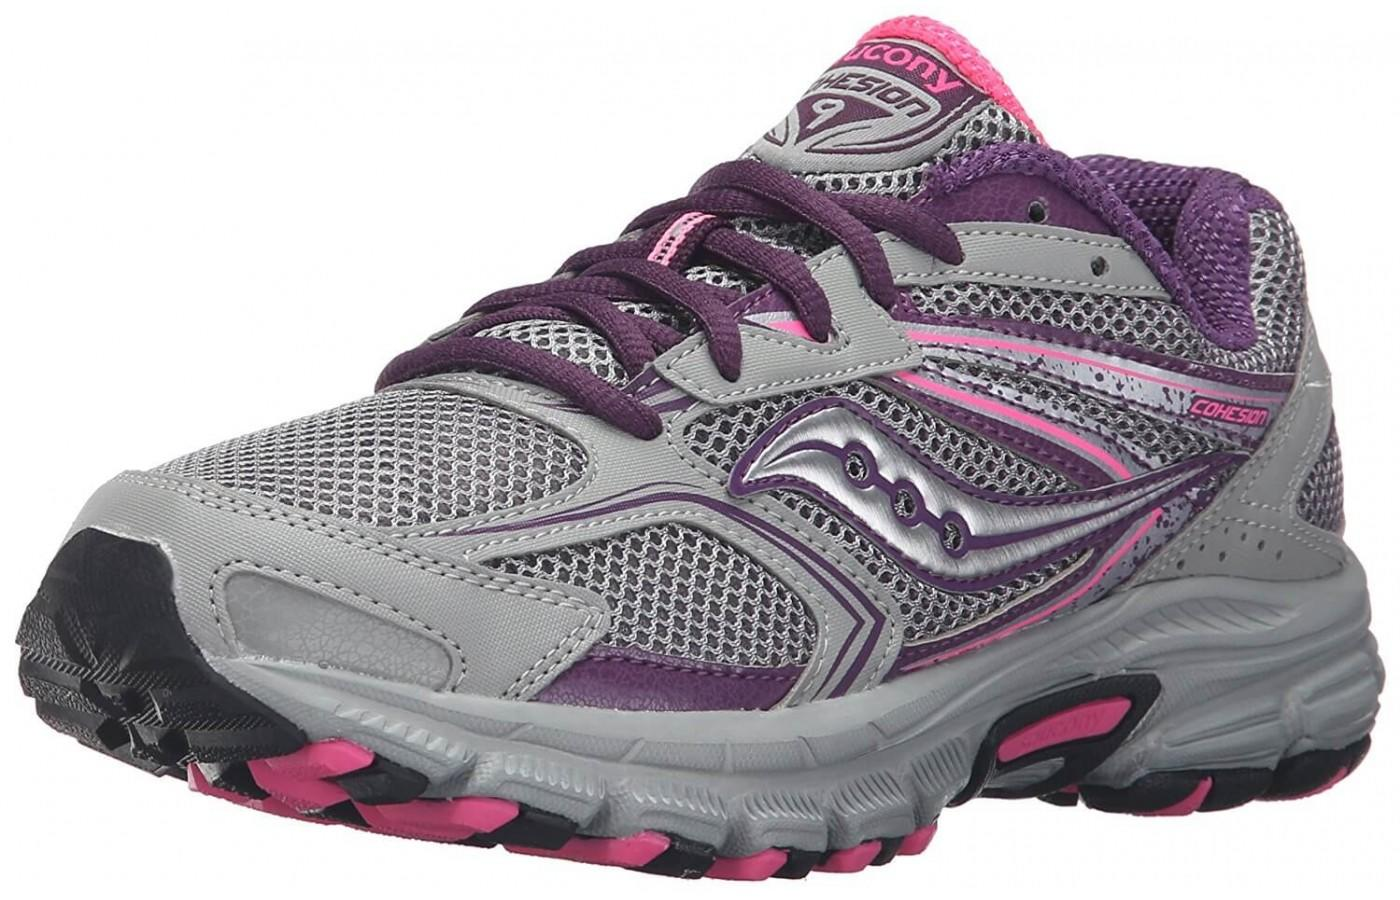 the Saucony Cohesion TR 9 shown from the front/side